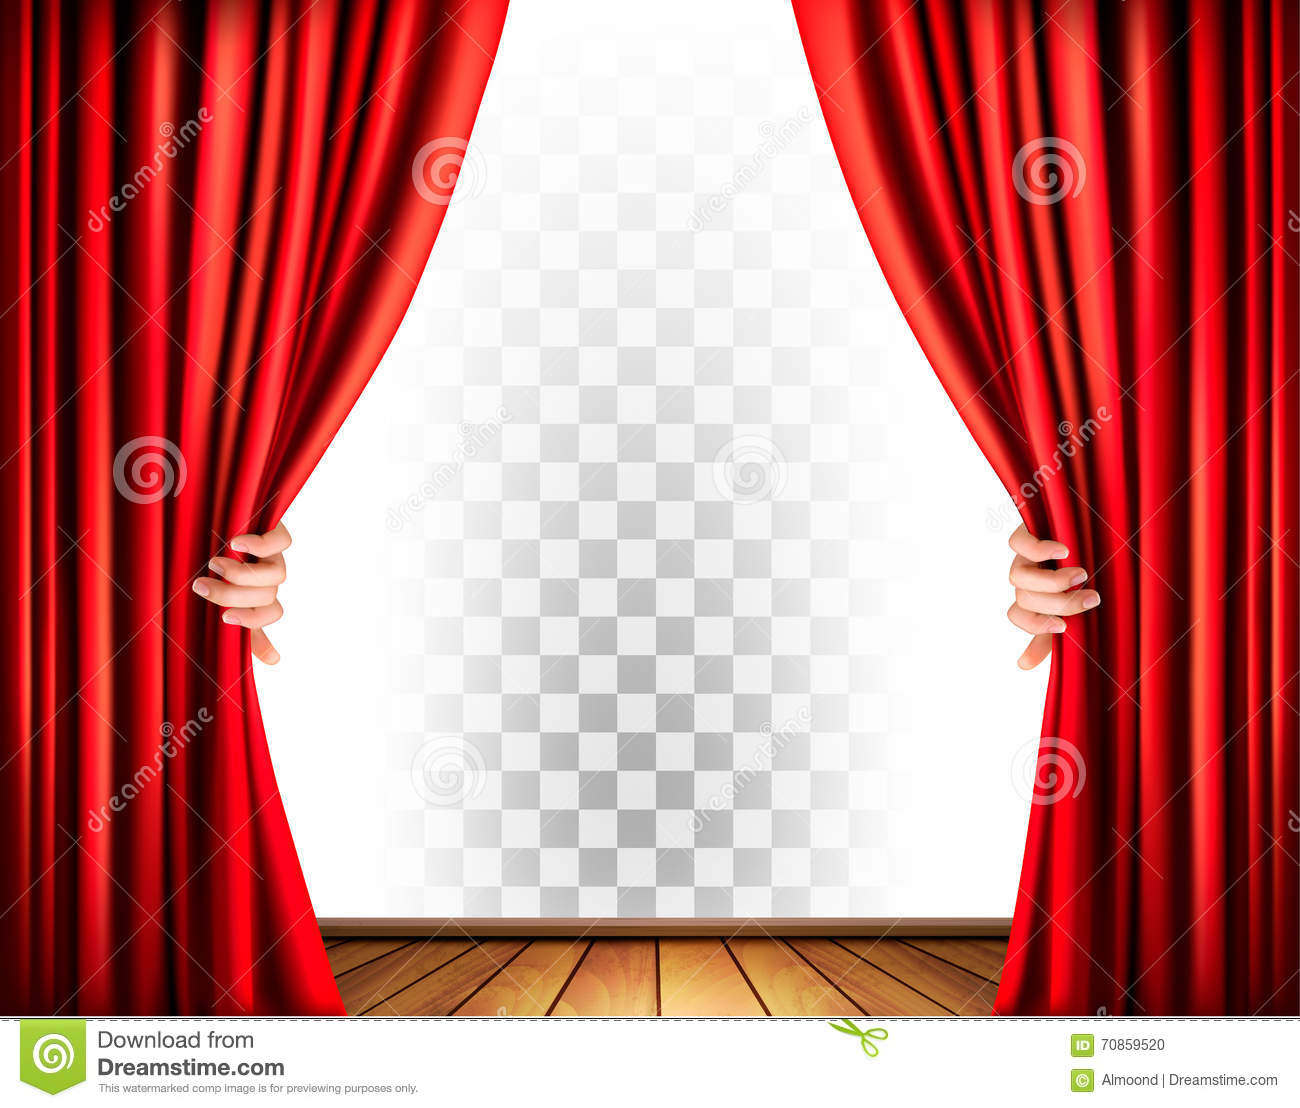 Theatre curtains png - Real Open Stage Curtains Theater Curtains With A Transparent Background